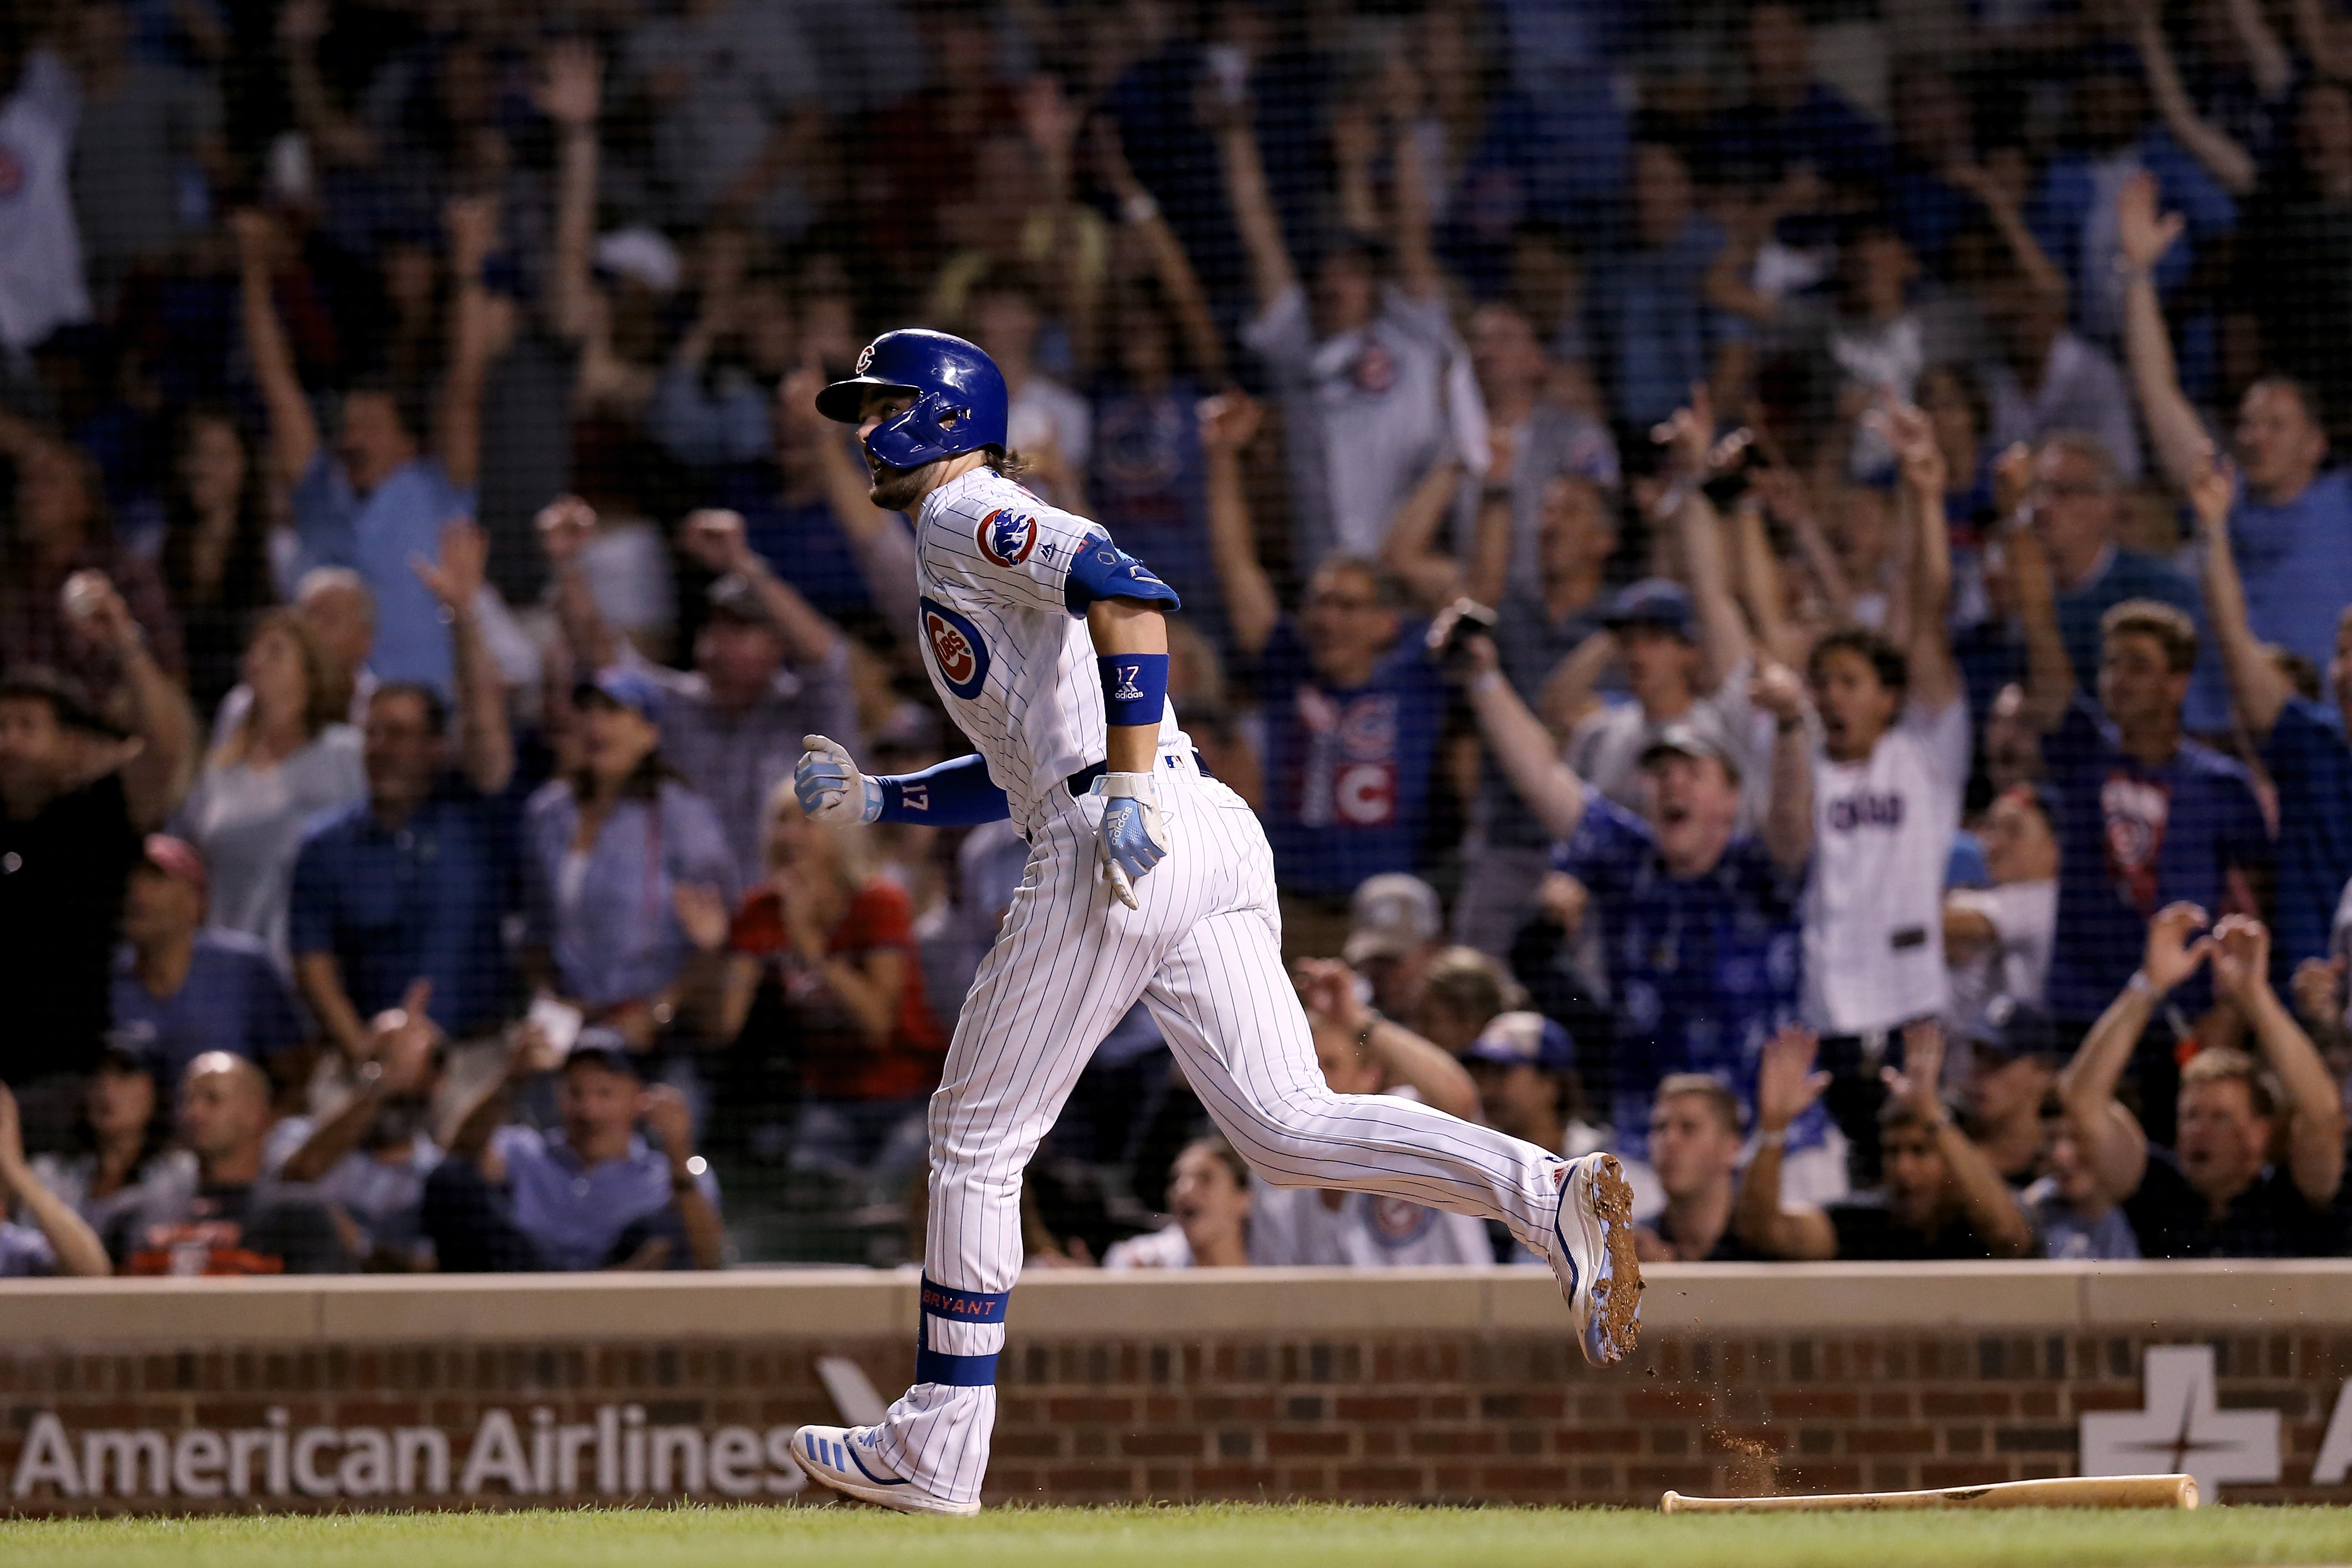 Savor the image of a Kris Bryant home run at Wrigley Field.